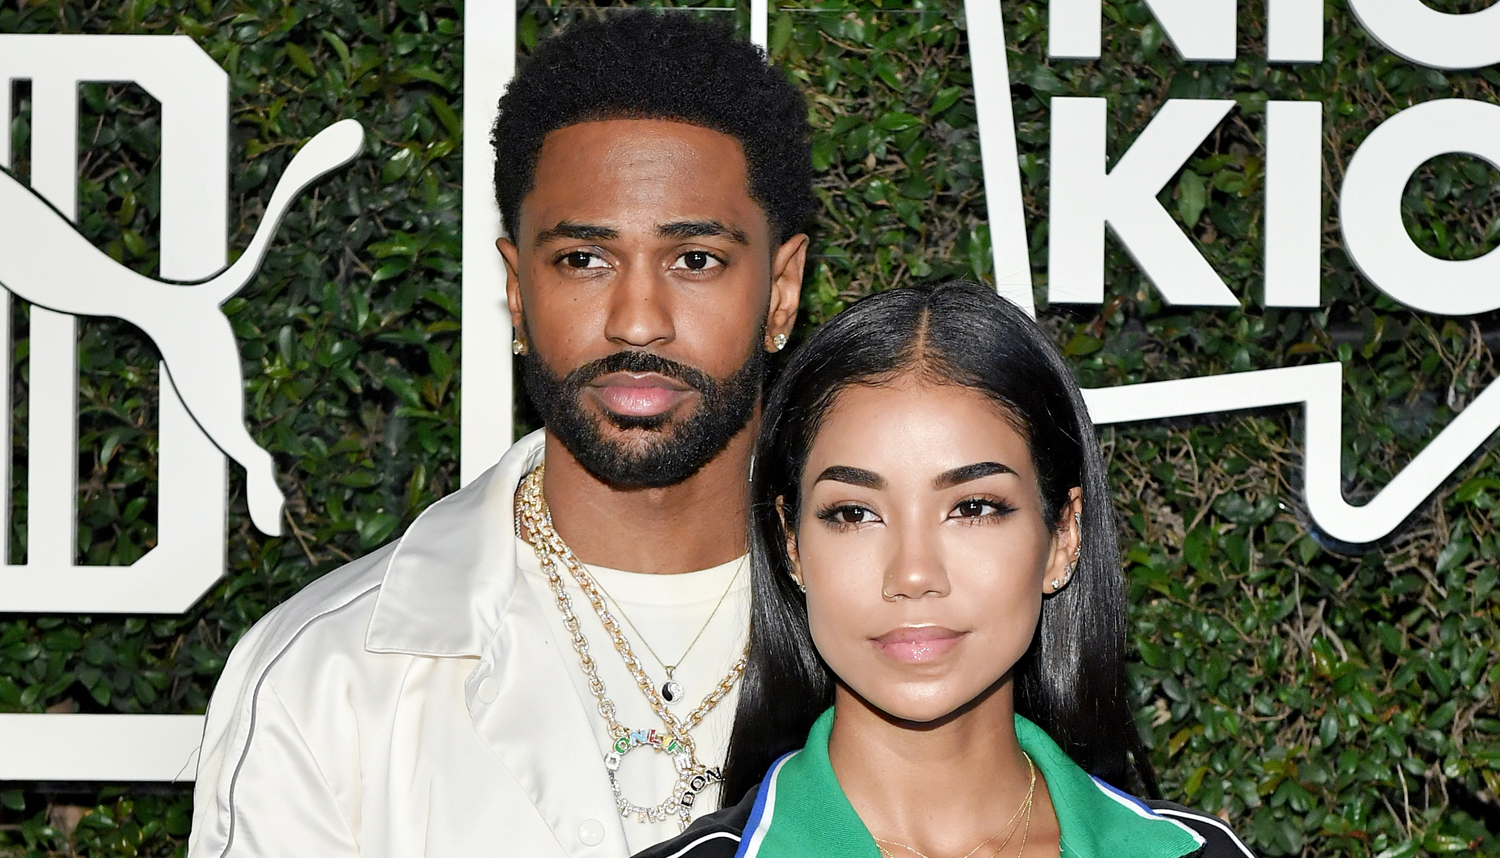 Jhene Aiko Reunites With Ex Big Sean After Dropping New